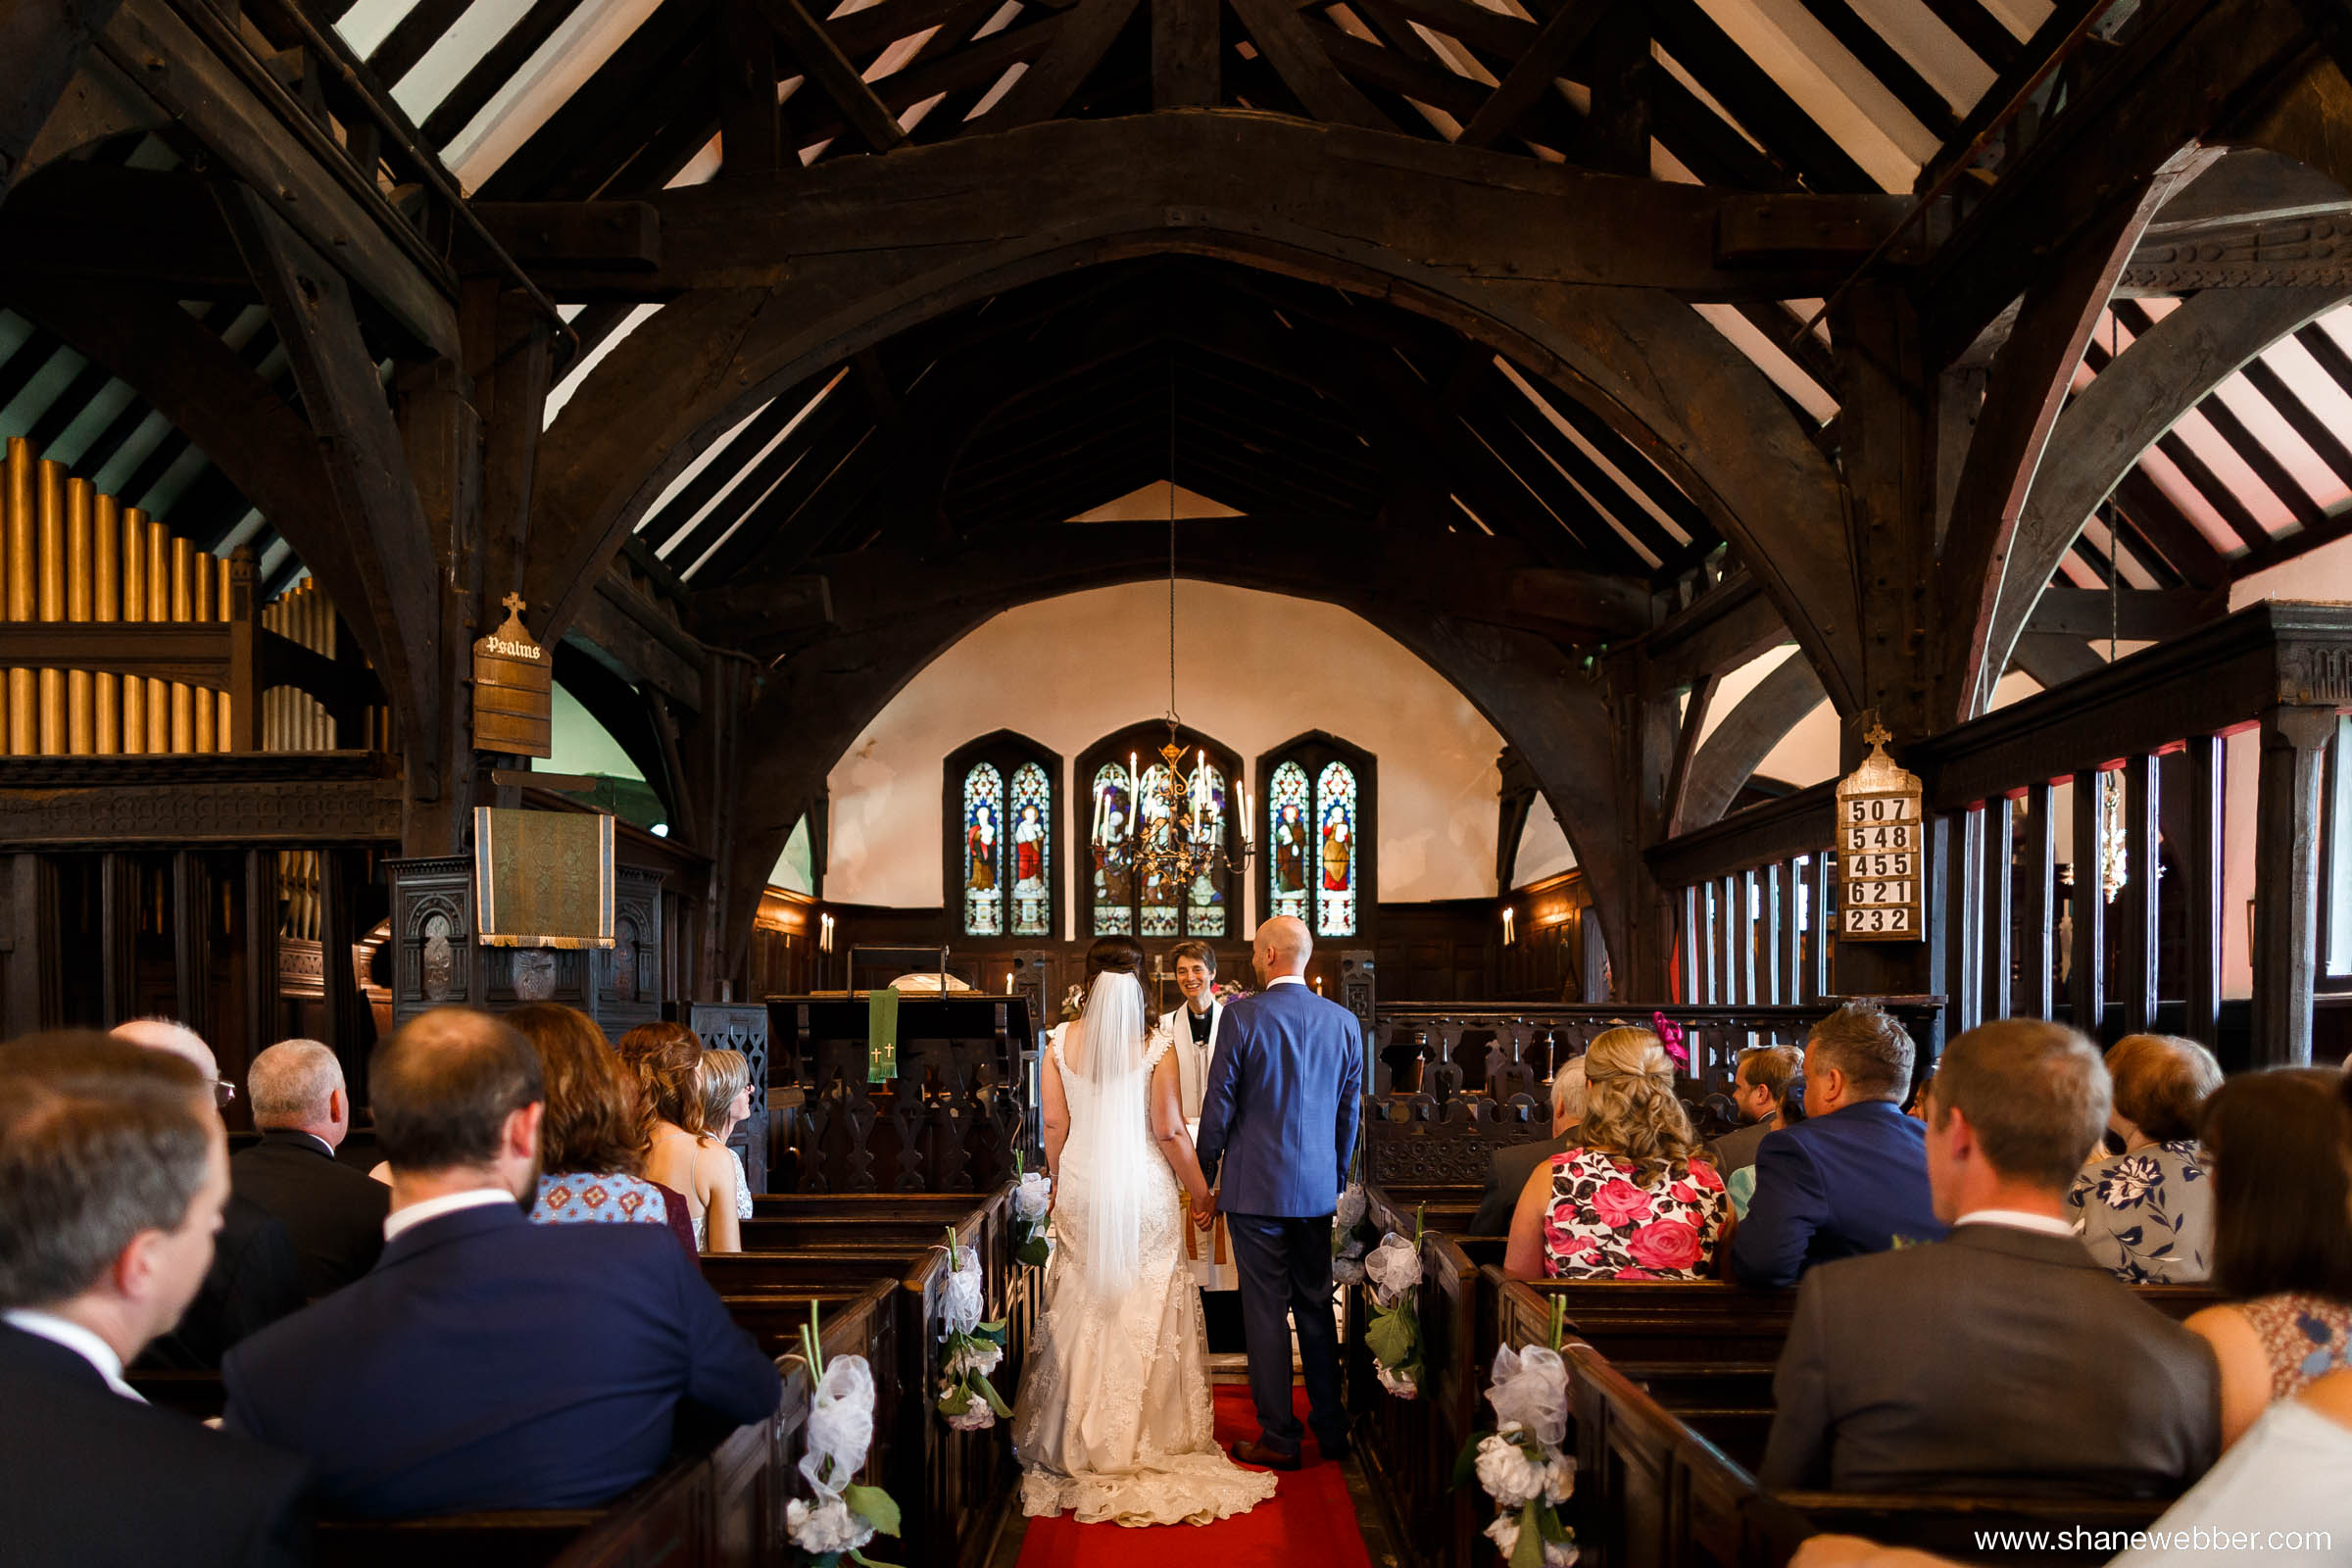 Weddings at Saint Oswald's Church in Lower Peover